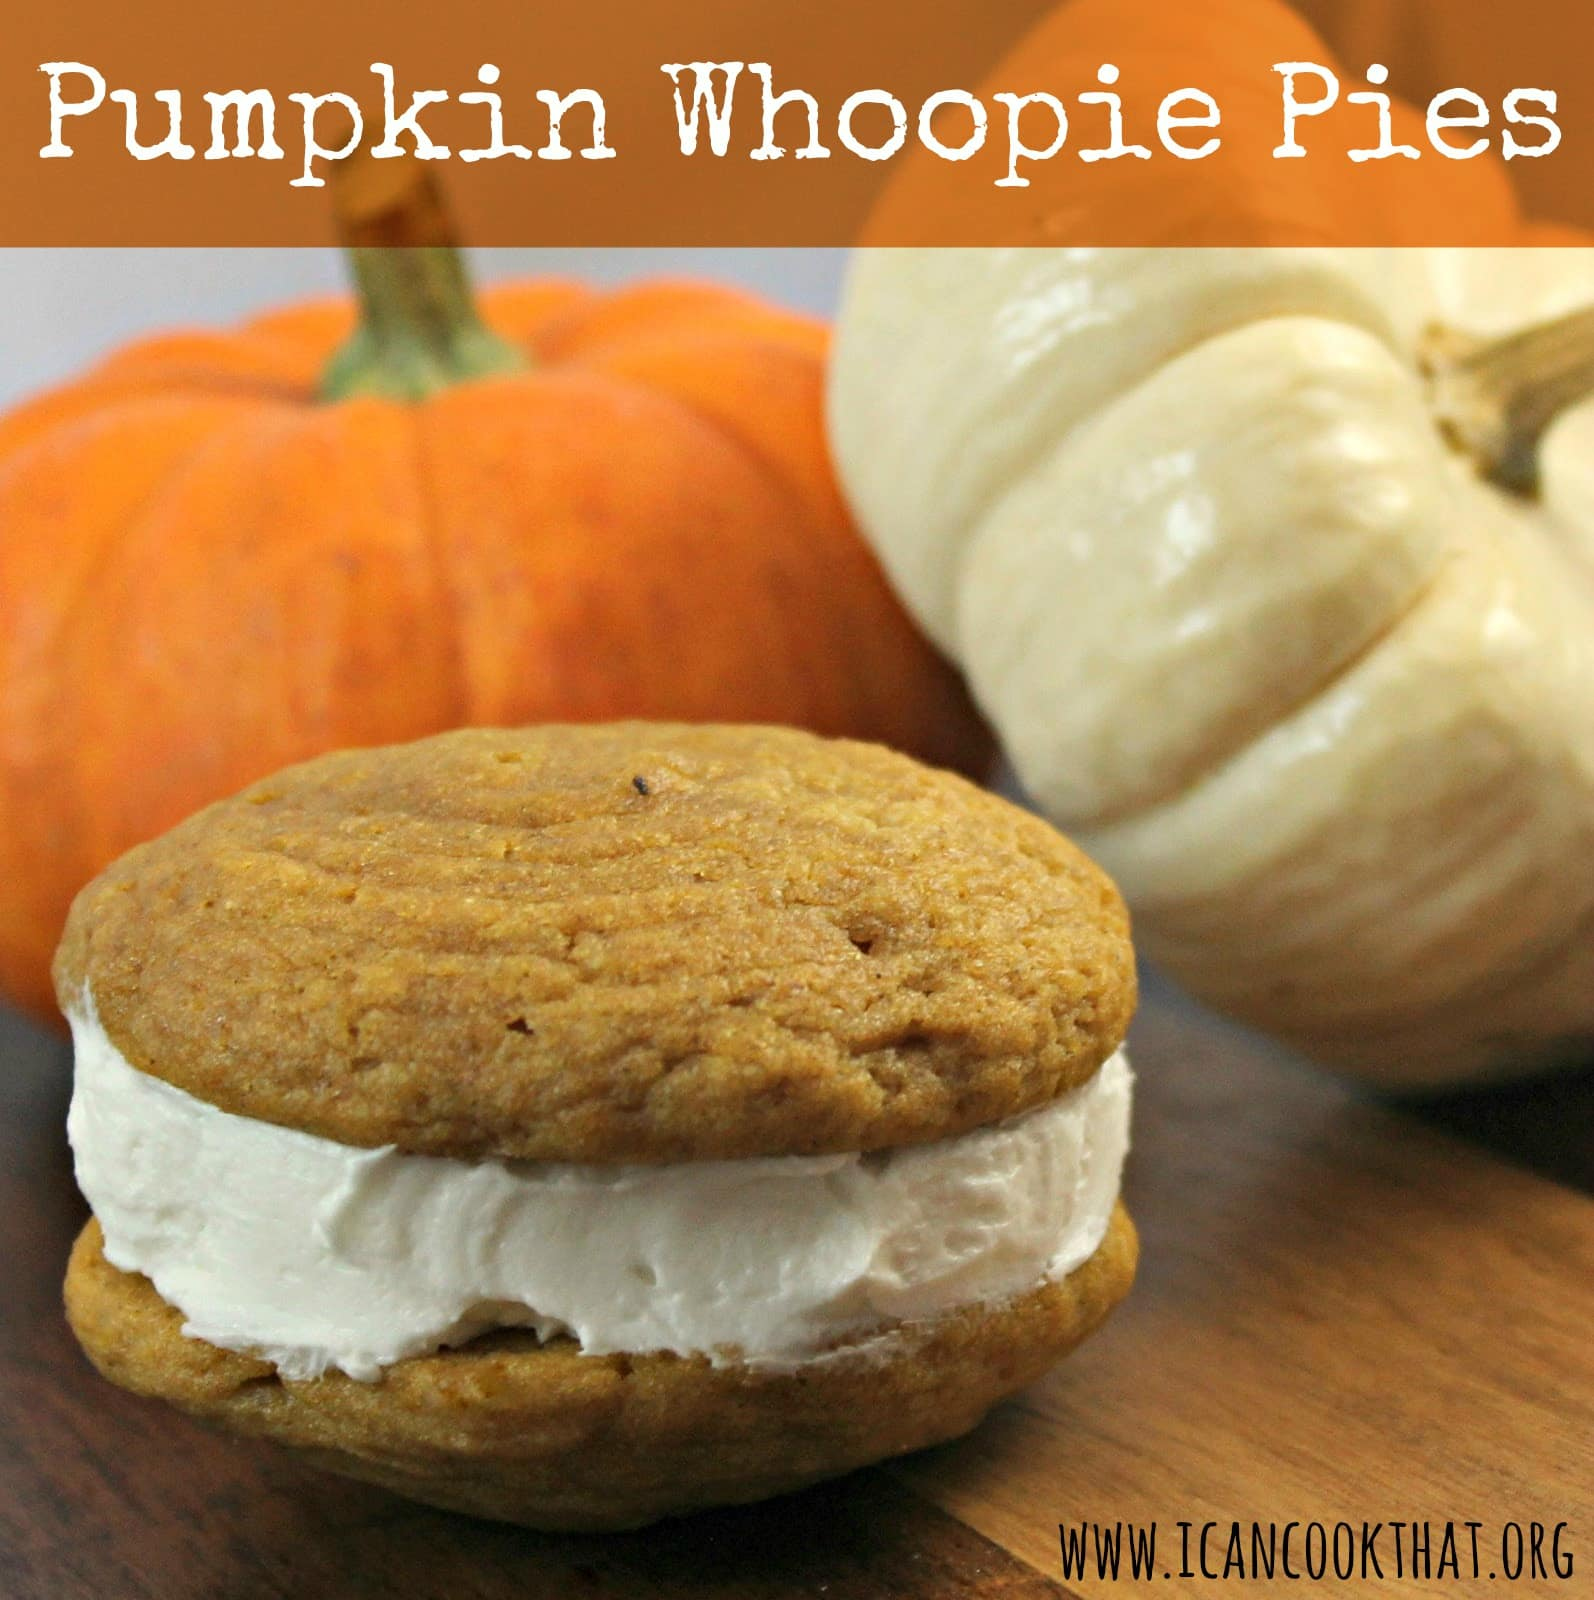 Pumpkin Whoopie Pies | I Can Cook That